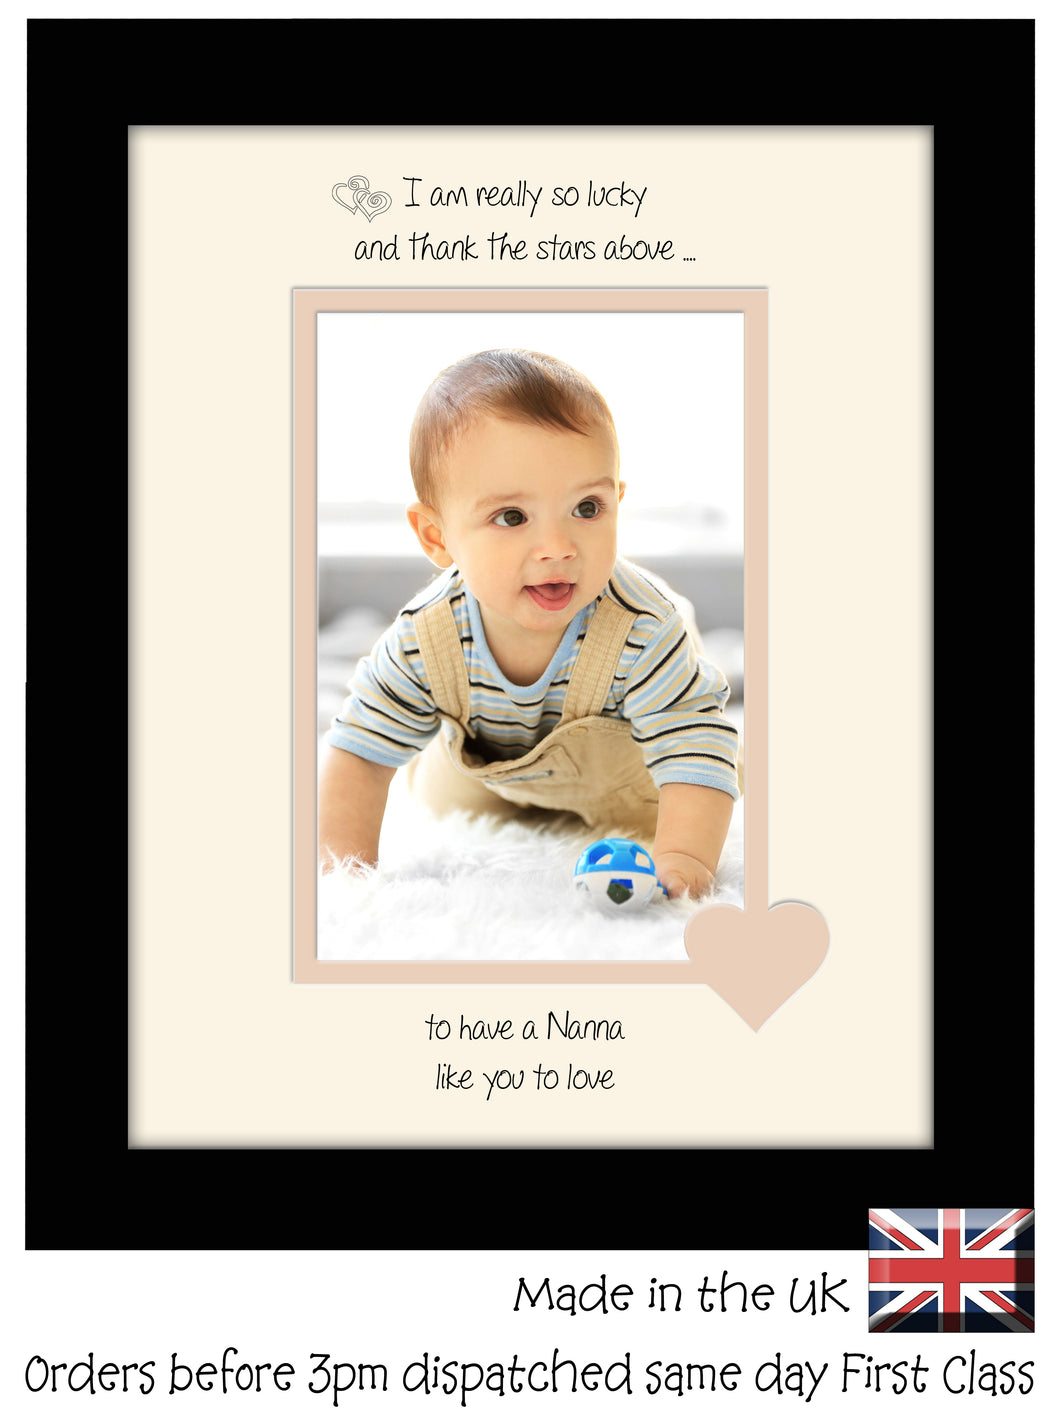 Nanna Photo Frame - I Thank the stars Nanna Portrait photo frame 6